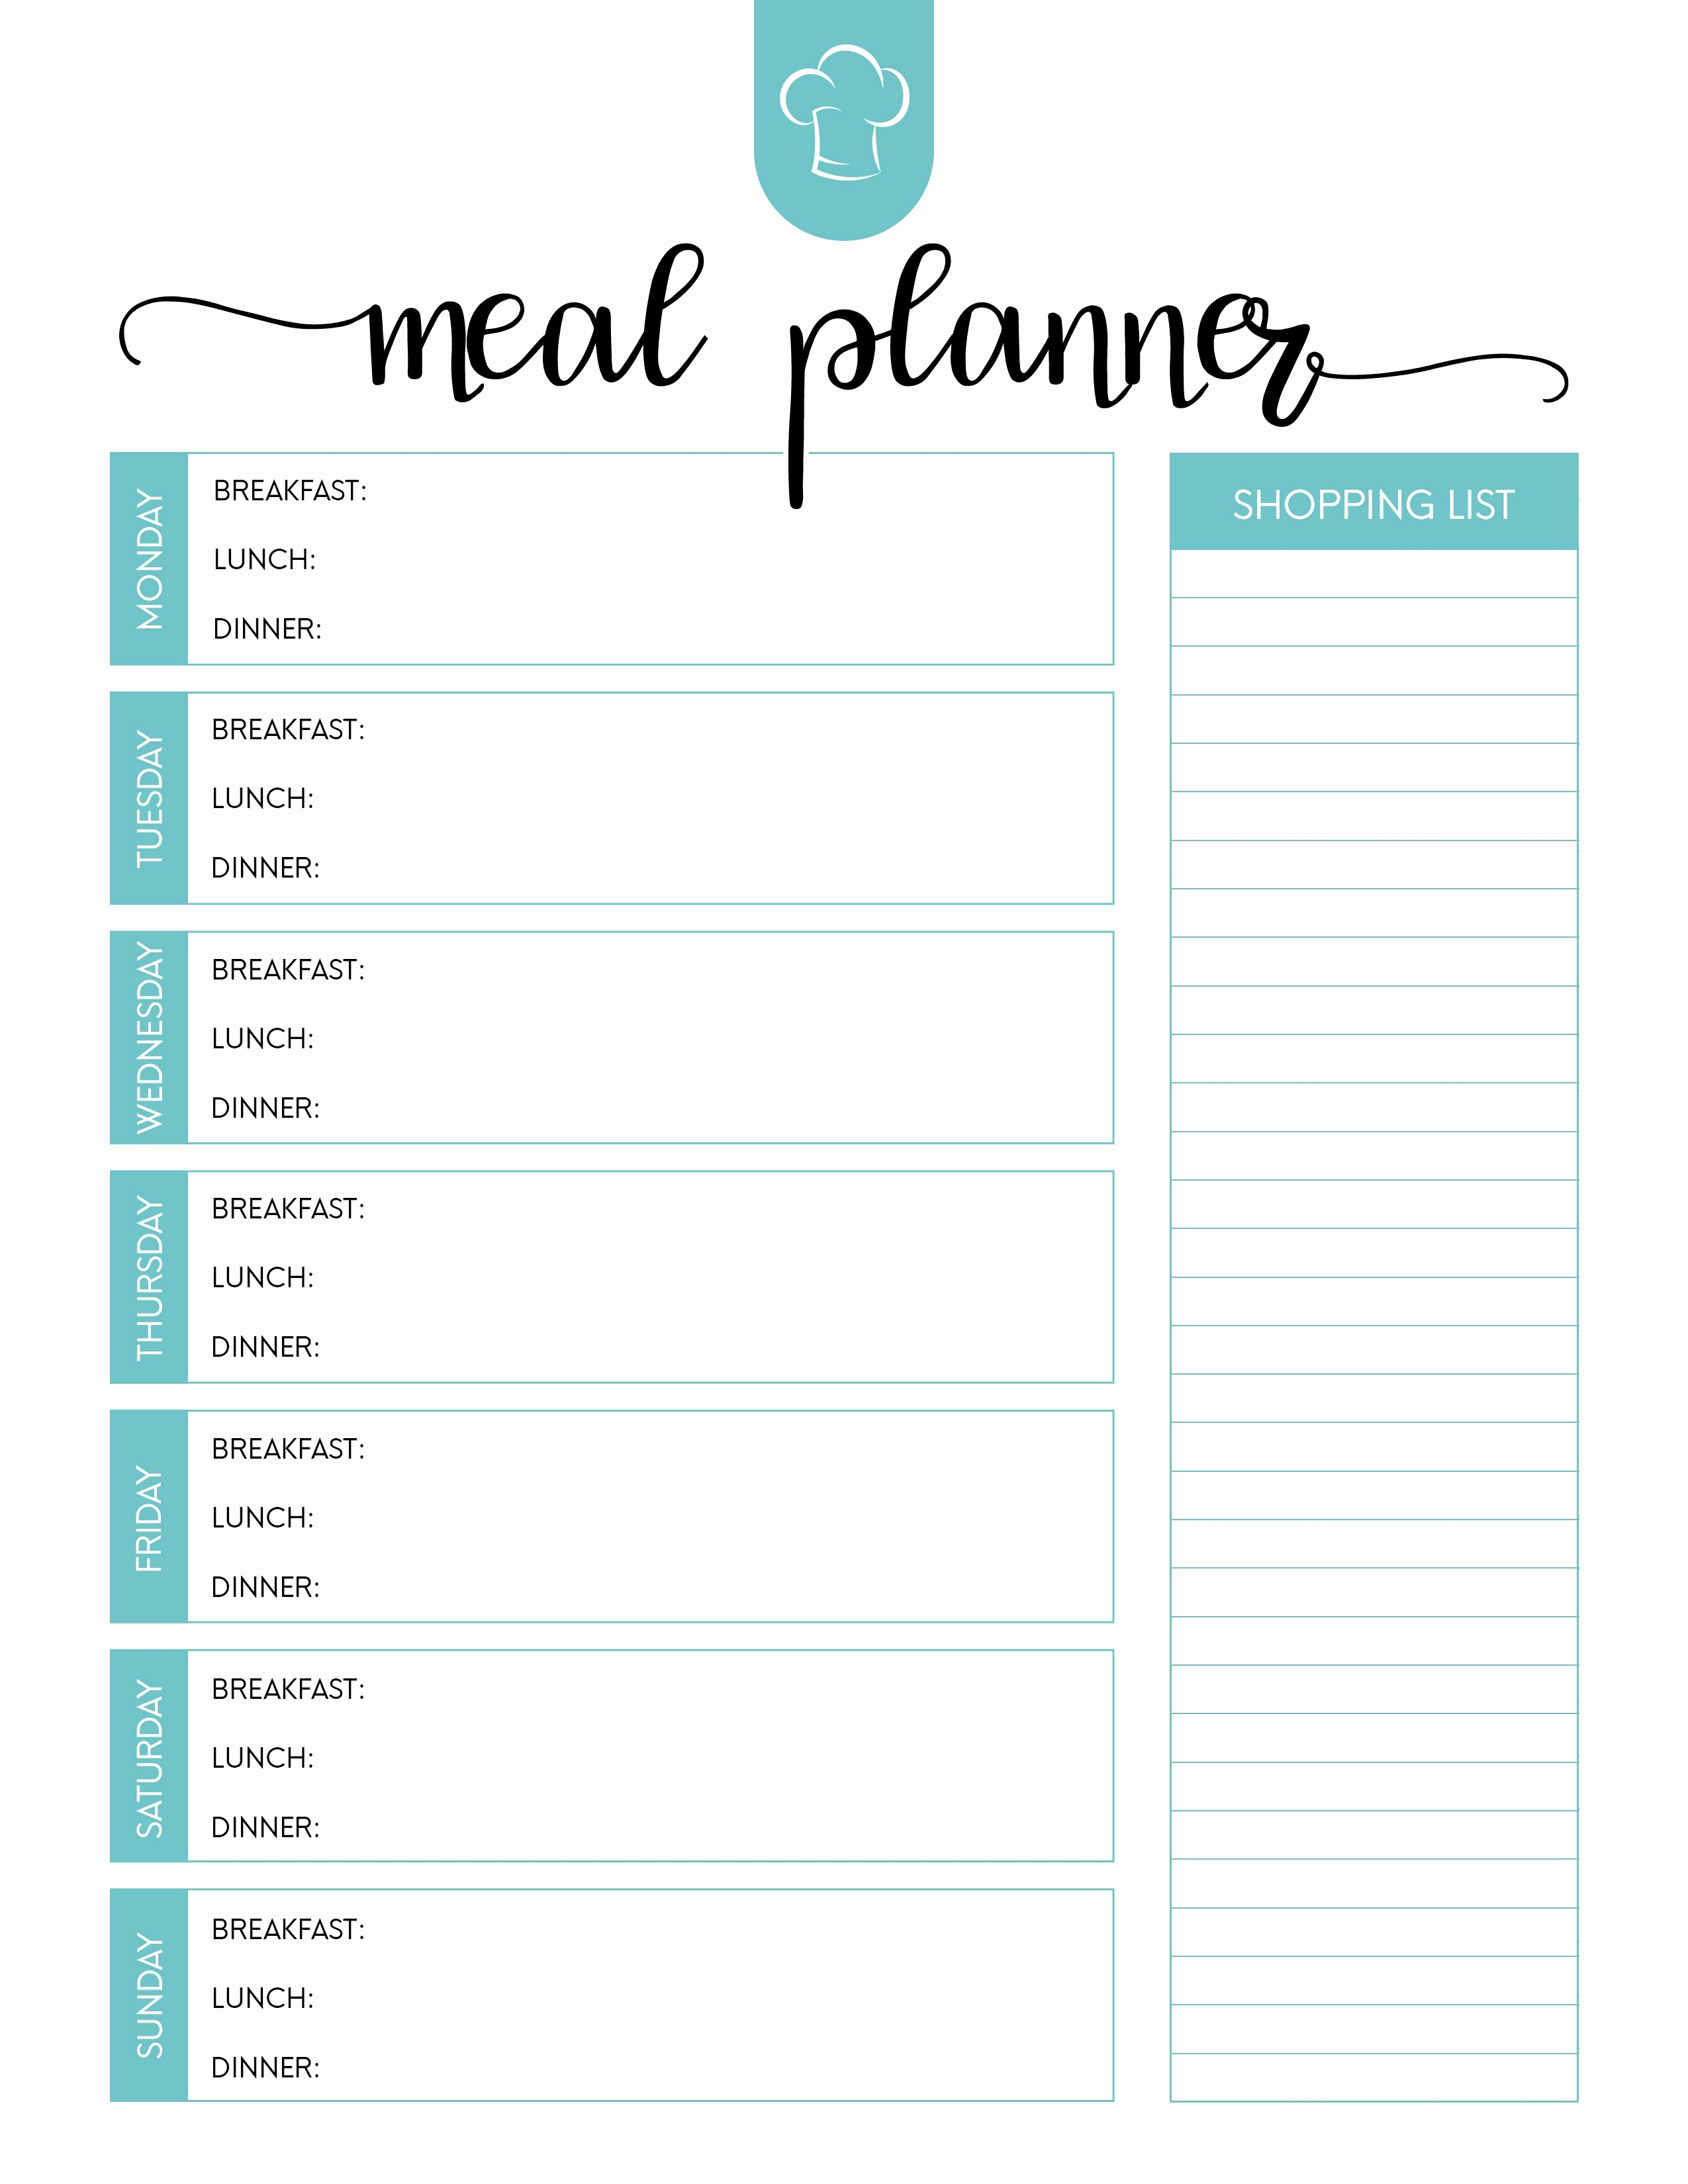 Free Printable Menu Template Elegant Printable Meal Planning Template Dinner Planner Blank Plan